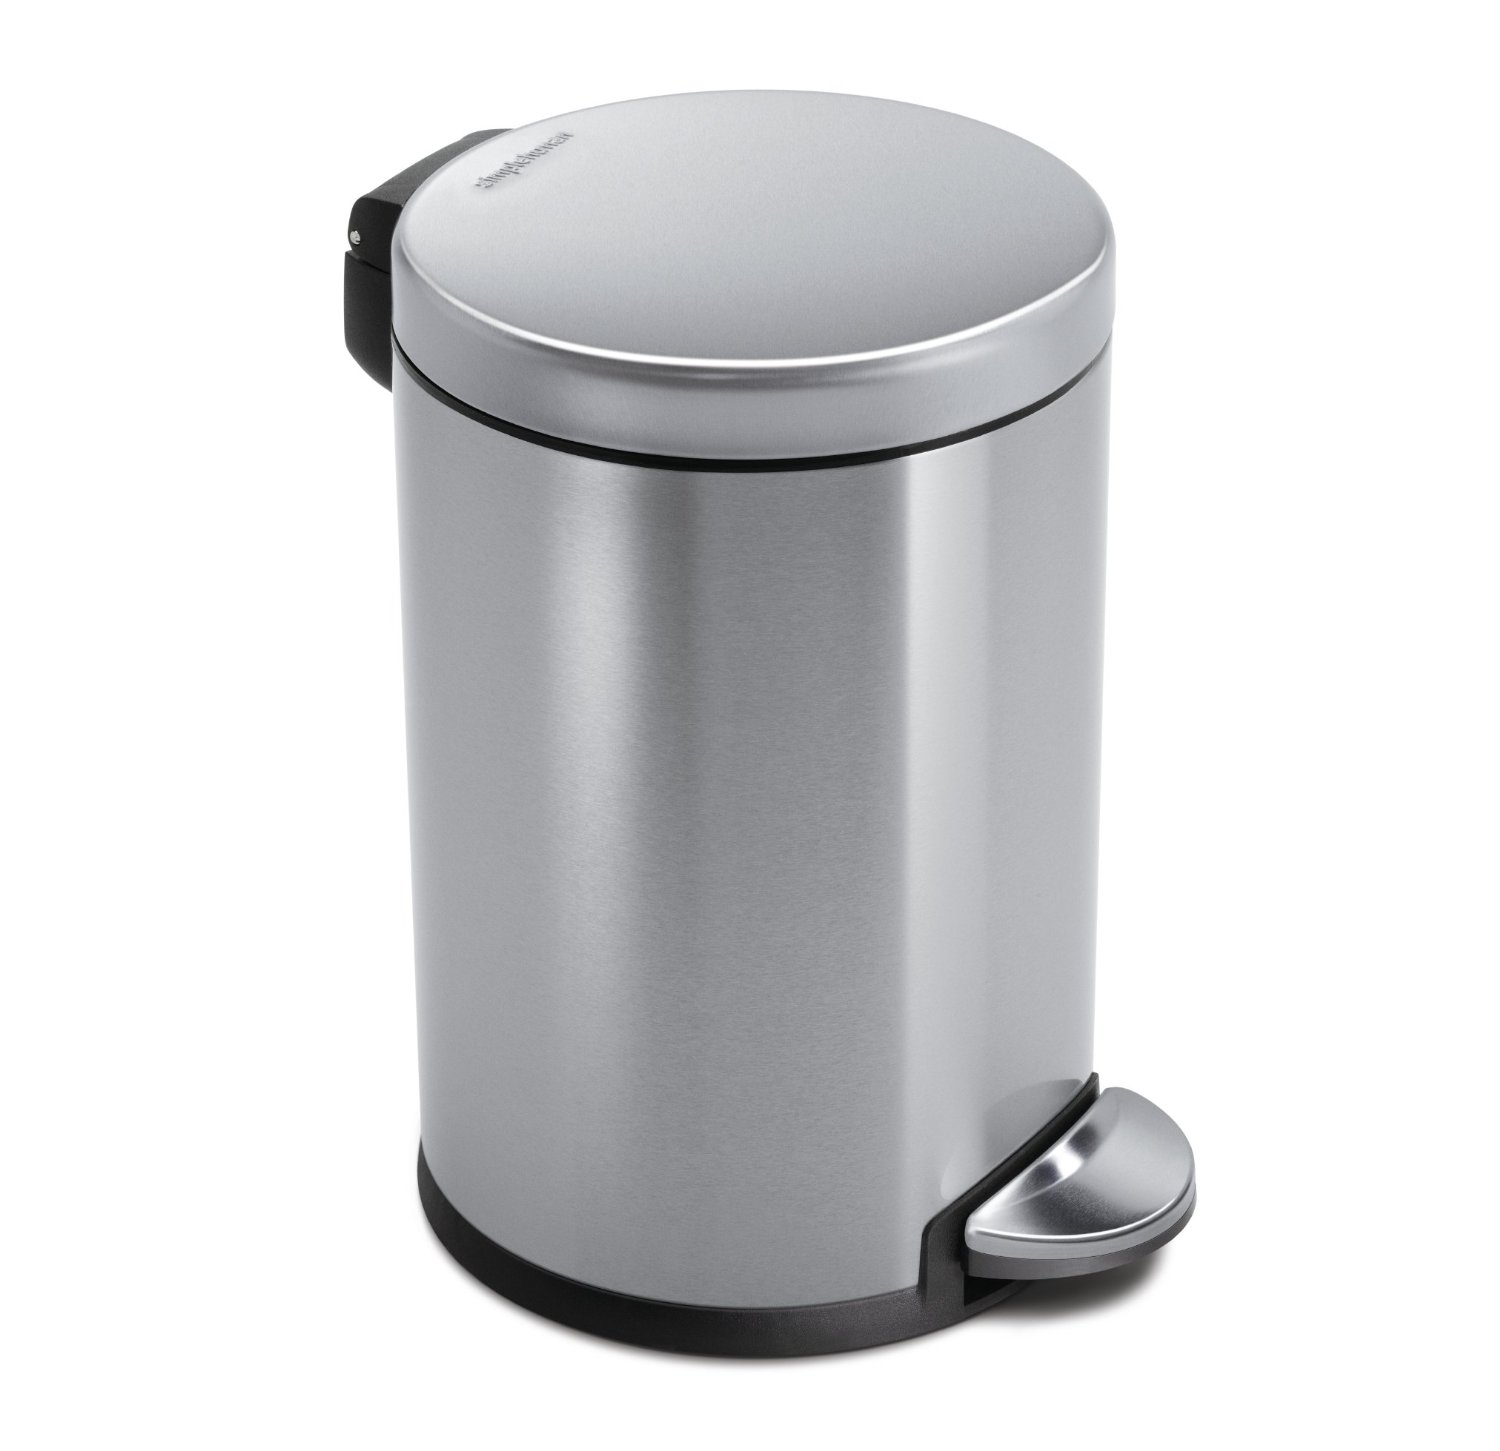 Stainless Steel Tall Kitchen Garbage Can Best Bathroom Trash Can Reviews Of 2018 At Topproducts